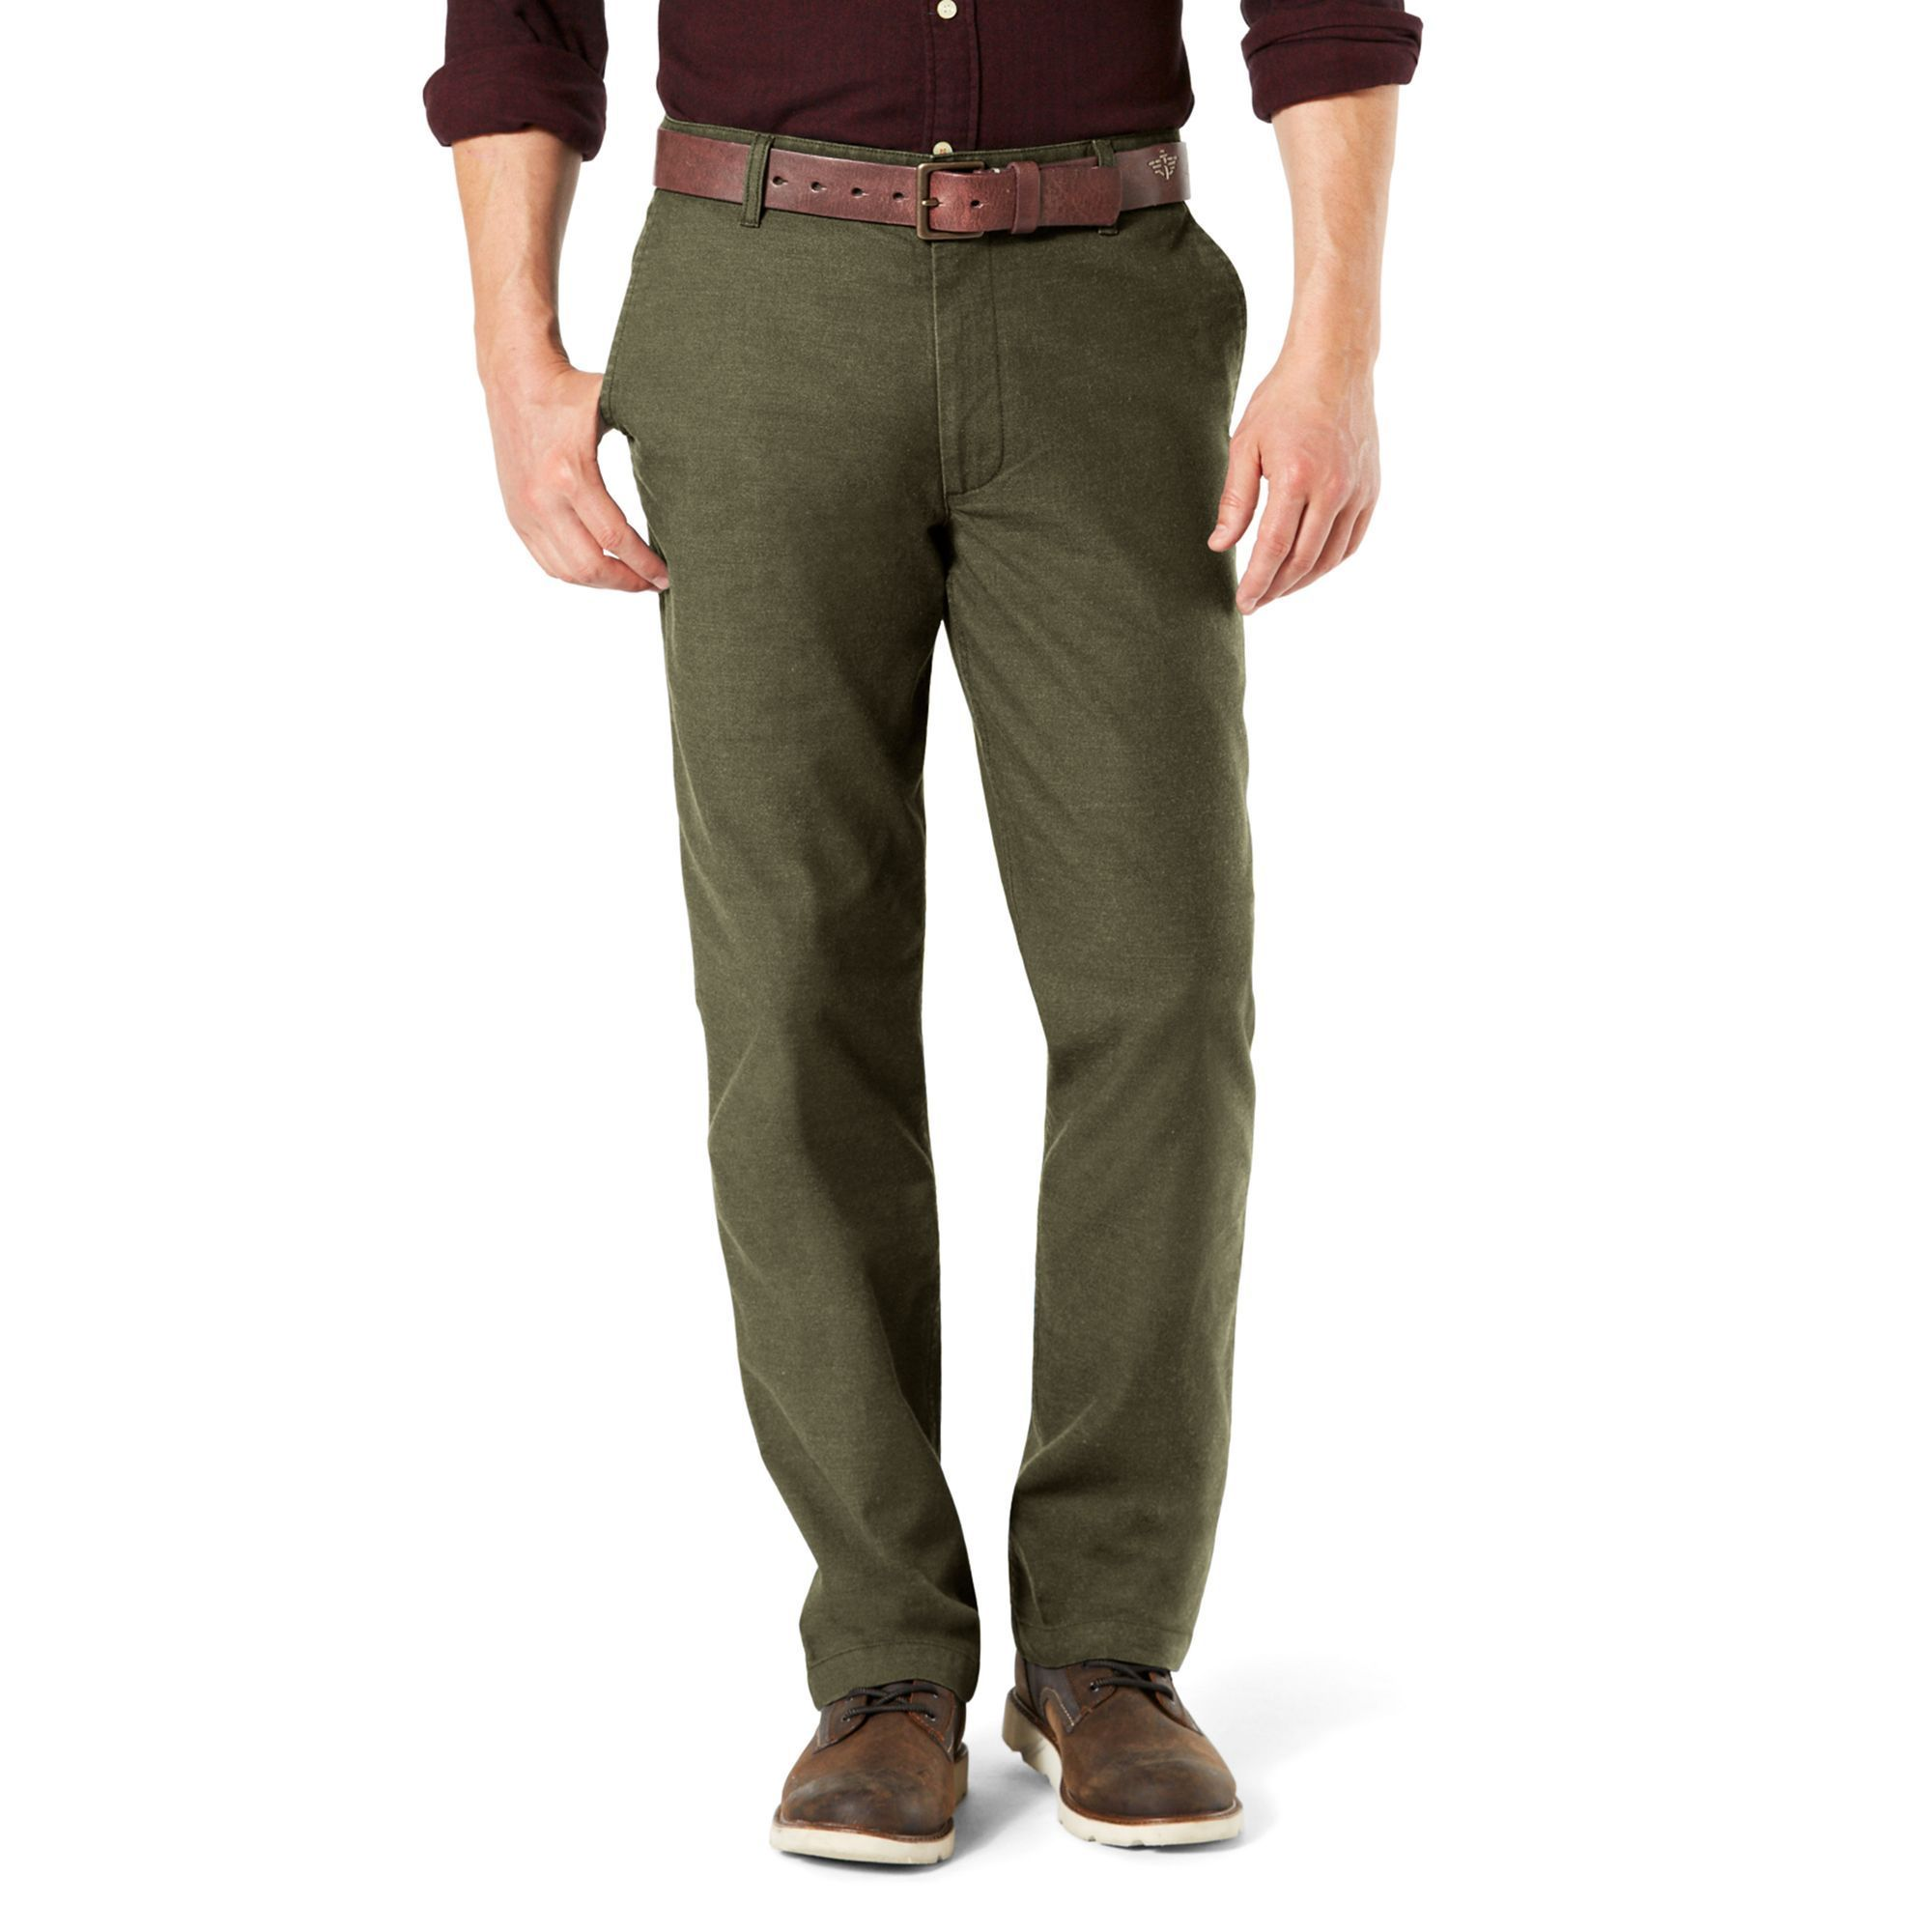 0ad63d0f0 Men s Dockers Pacific Straight-Fit Washed Khaki Stretch Pants ...